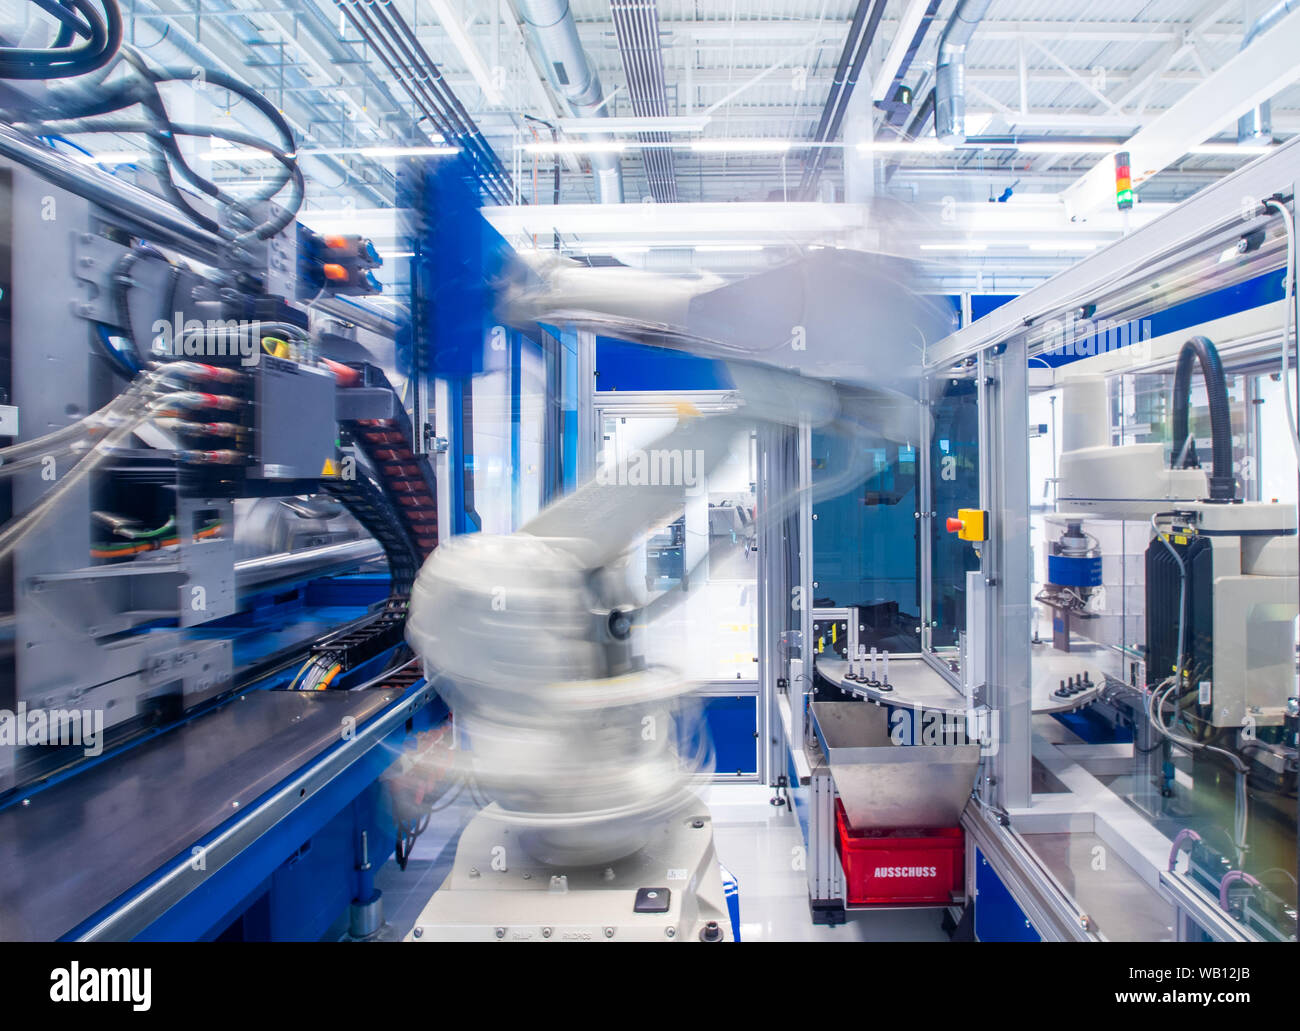 Industrial Injection Moulding Machine Stock Photos